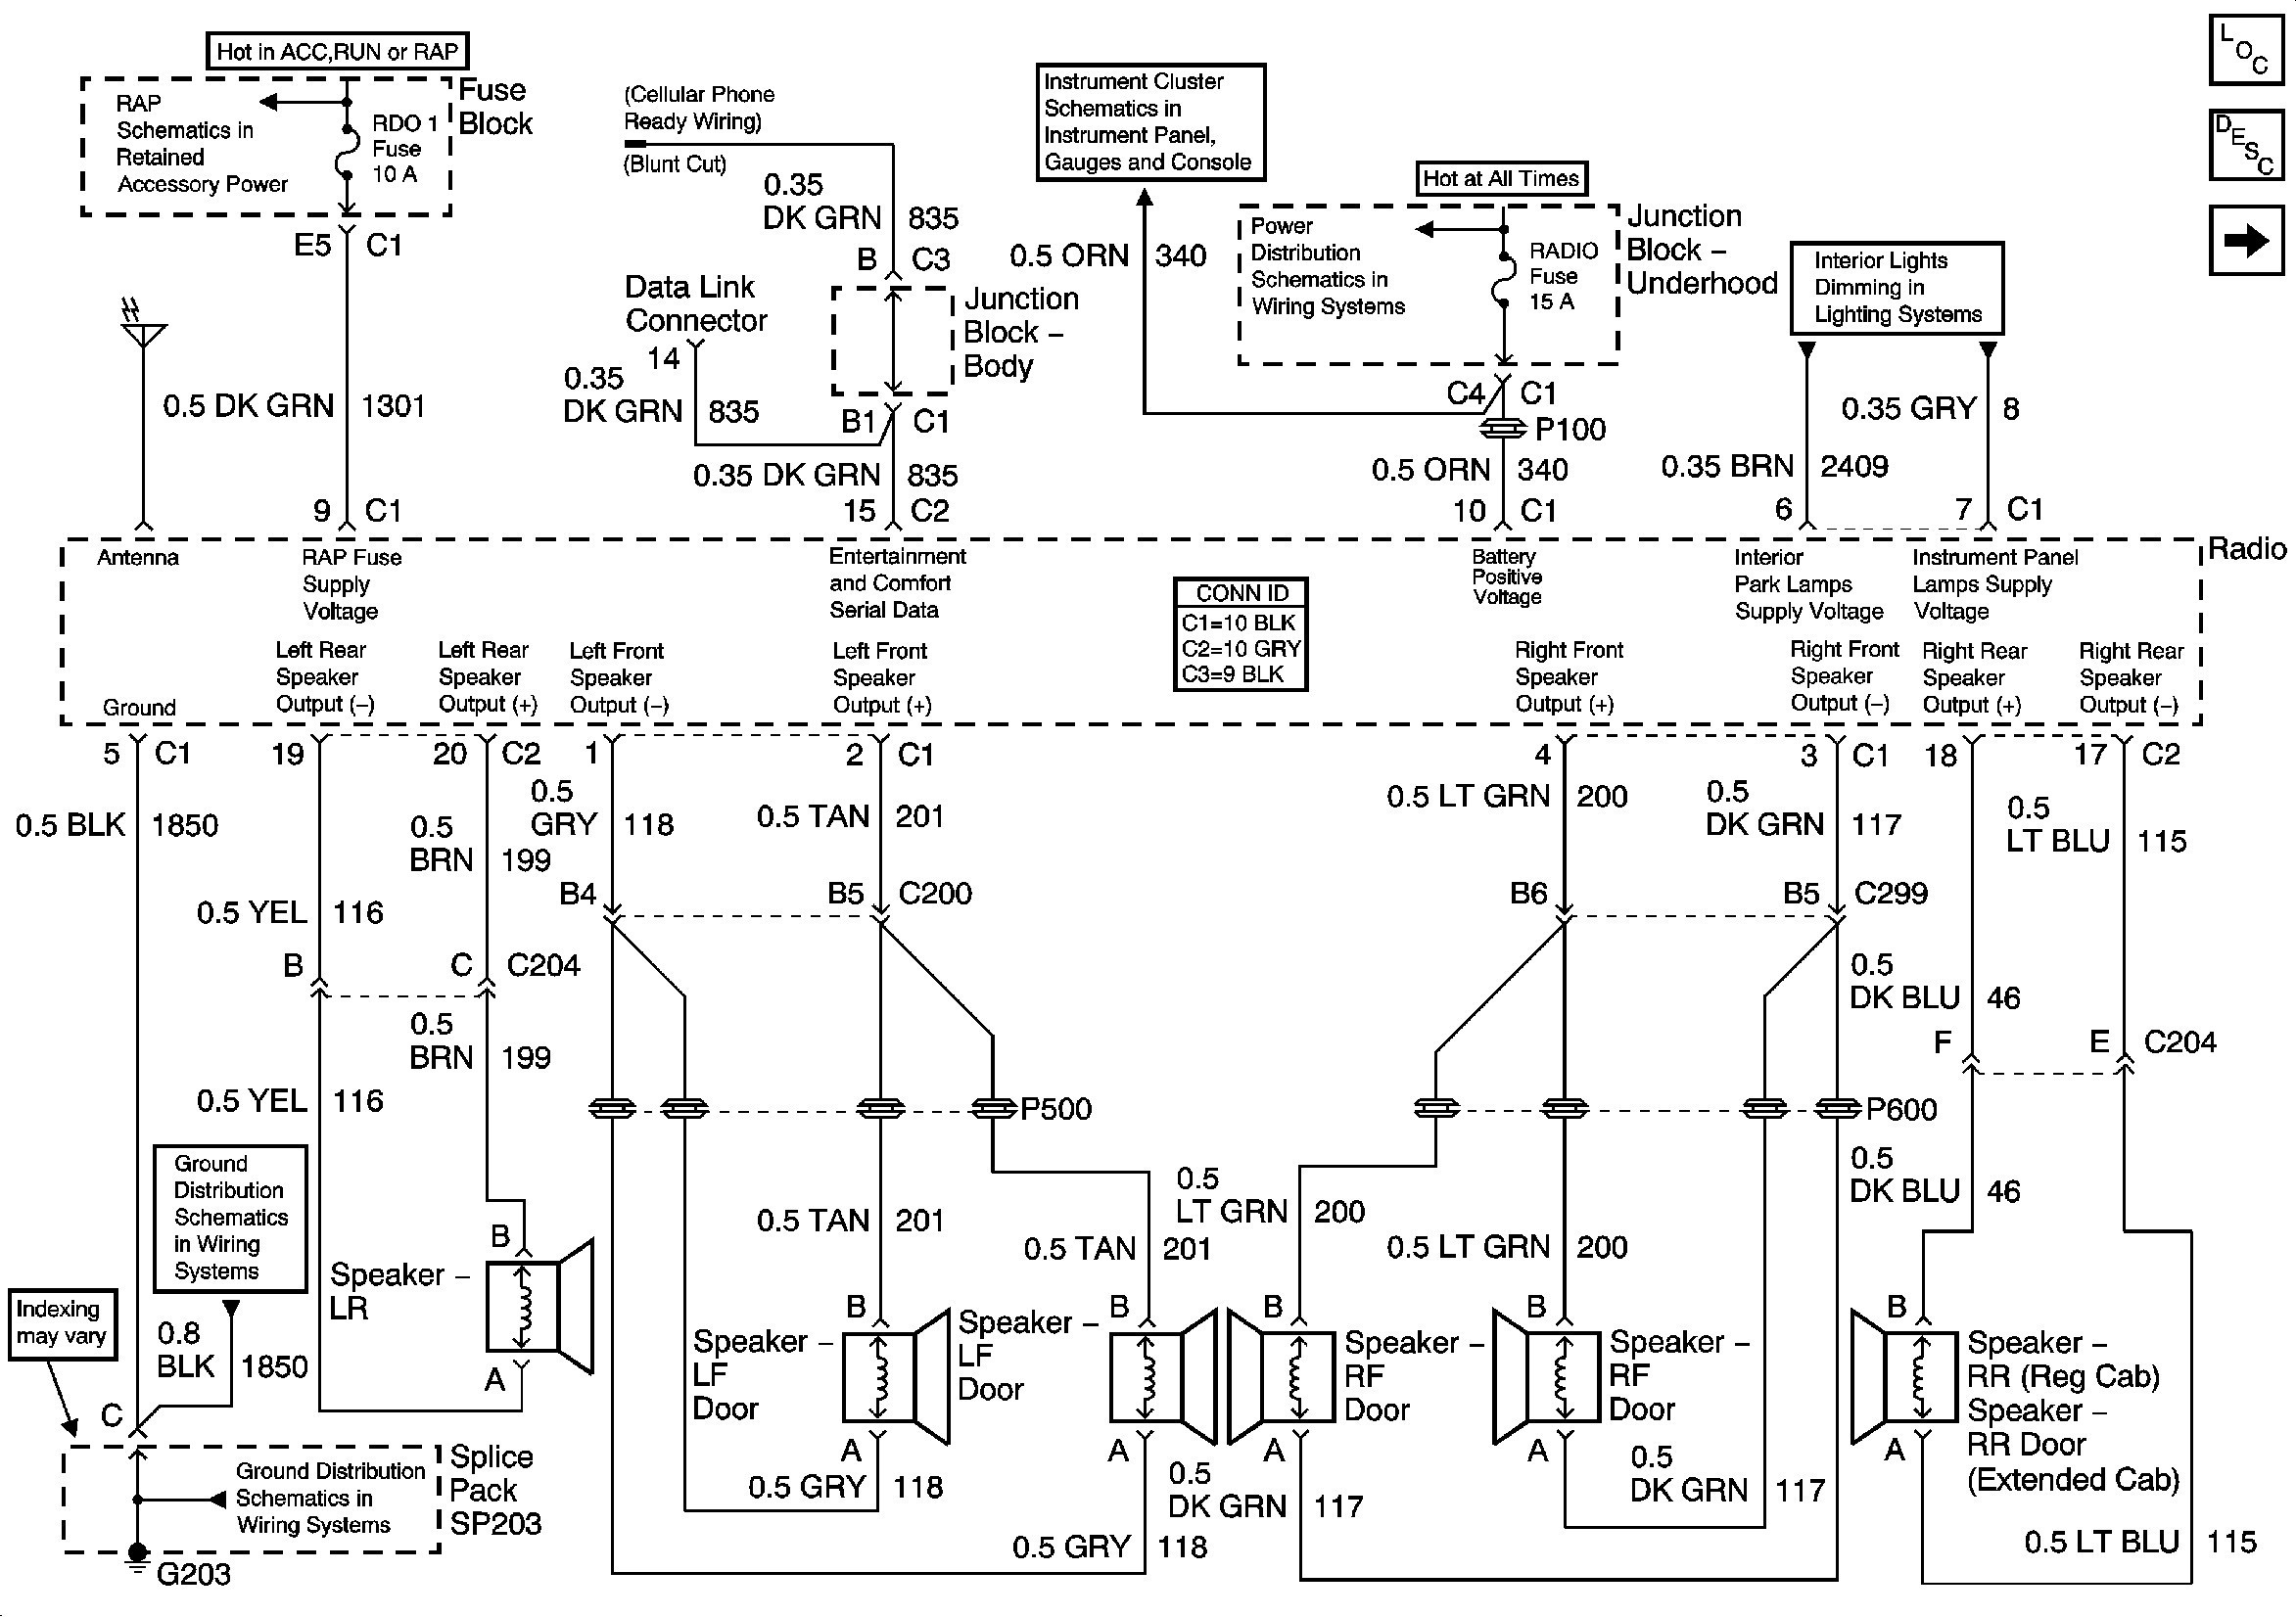 Wiring Diagram 2001 Chevy 2500 Wiring Diagram New 2000 Chevy Silverado 1500 Wiring Diagram 2000 Chevy Silverado Z71 Wiring Diagram